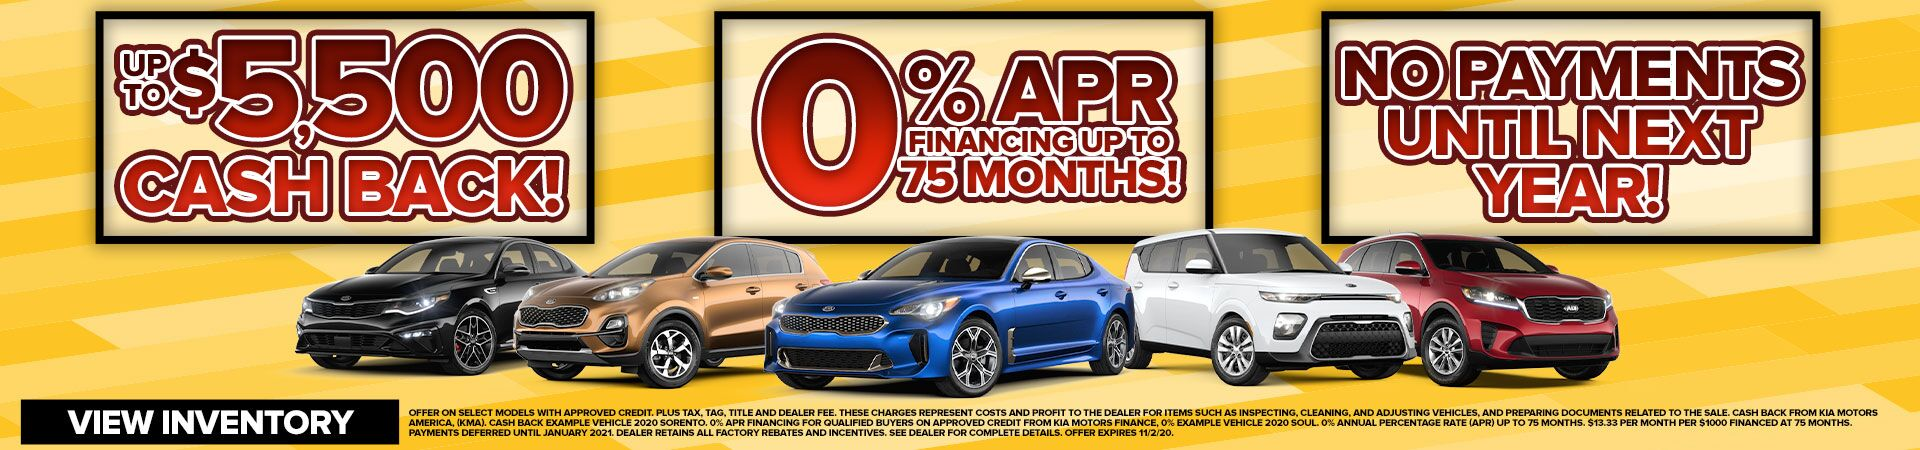 0% APR FINANCING UP TO 75 MONTHS